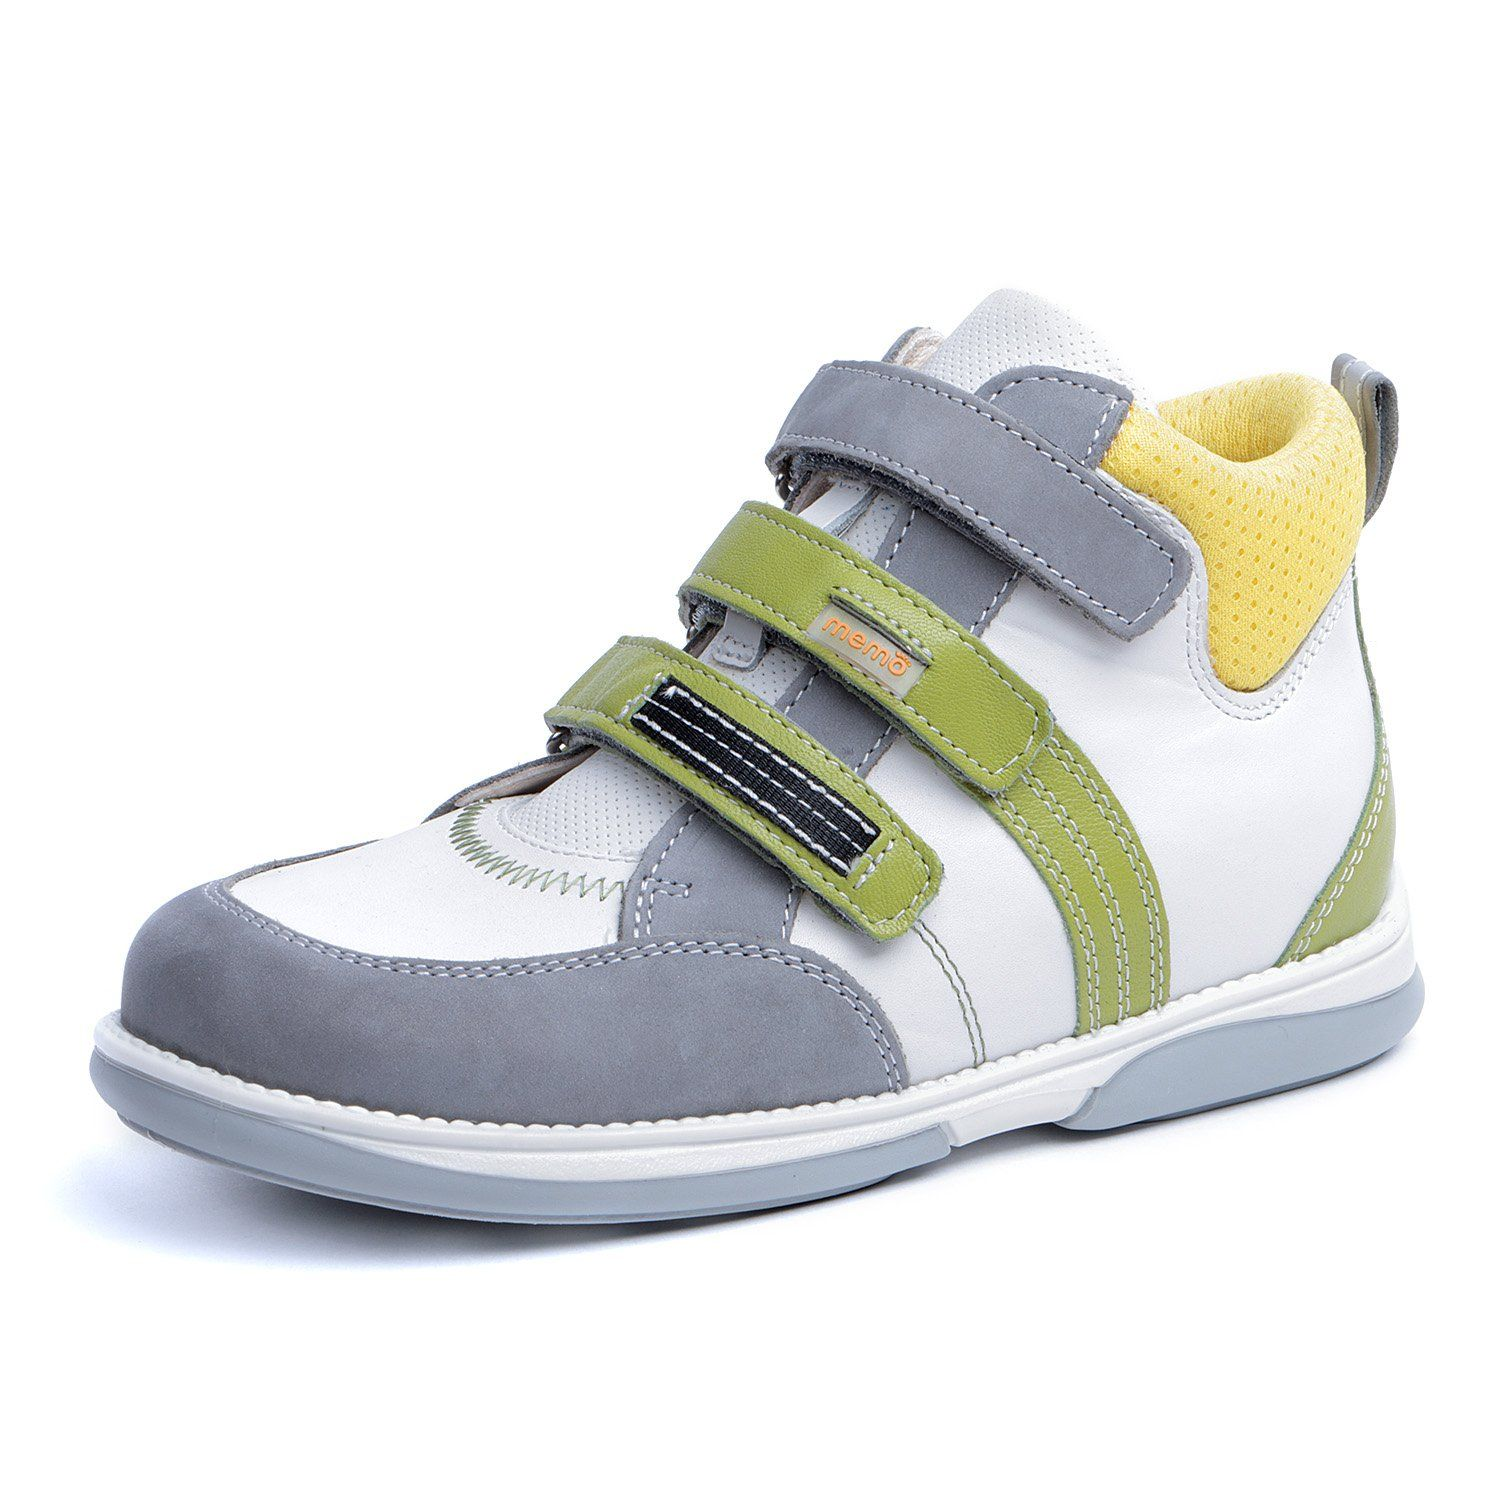 Skate shoes ankle support - Memo Polo 3ab Diagnostic Sole Ankle Support Kid S Orthopedic Leather Sneaker 38 6k